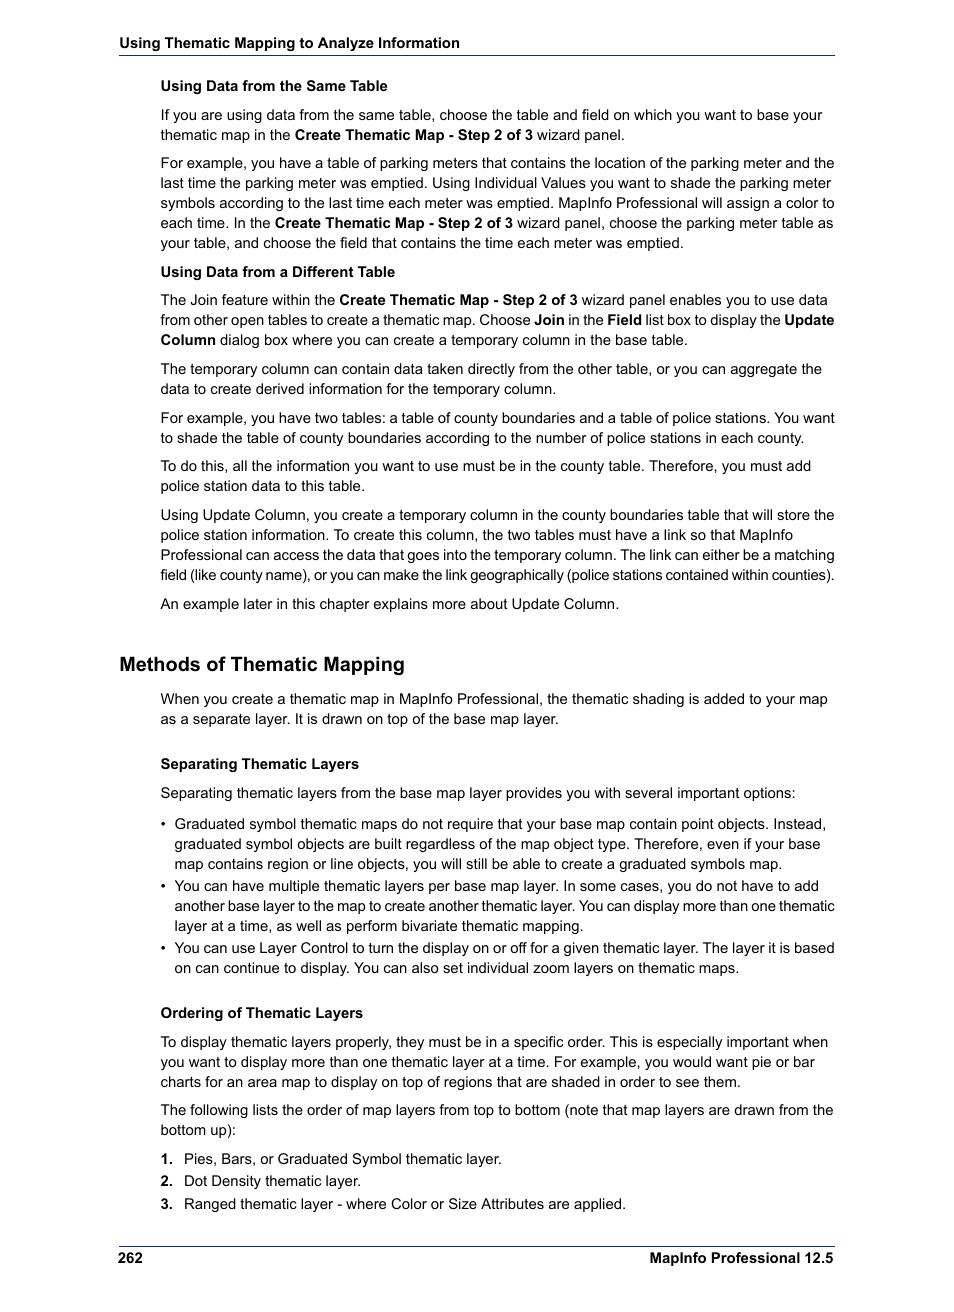 Methods of thematic mapping pitney bowes mapinfo professional methods of thematic mapping pitney bowes mapinfo professional user manual page 262 540 biocorpaavc Images